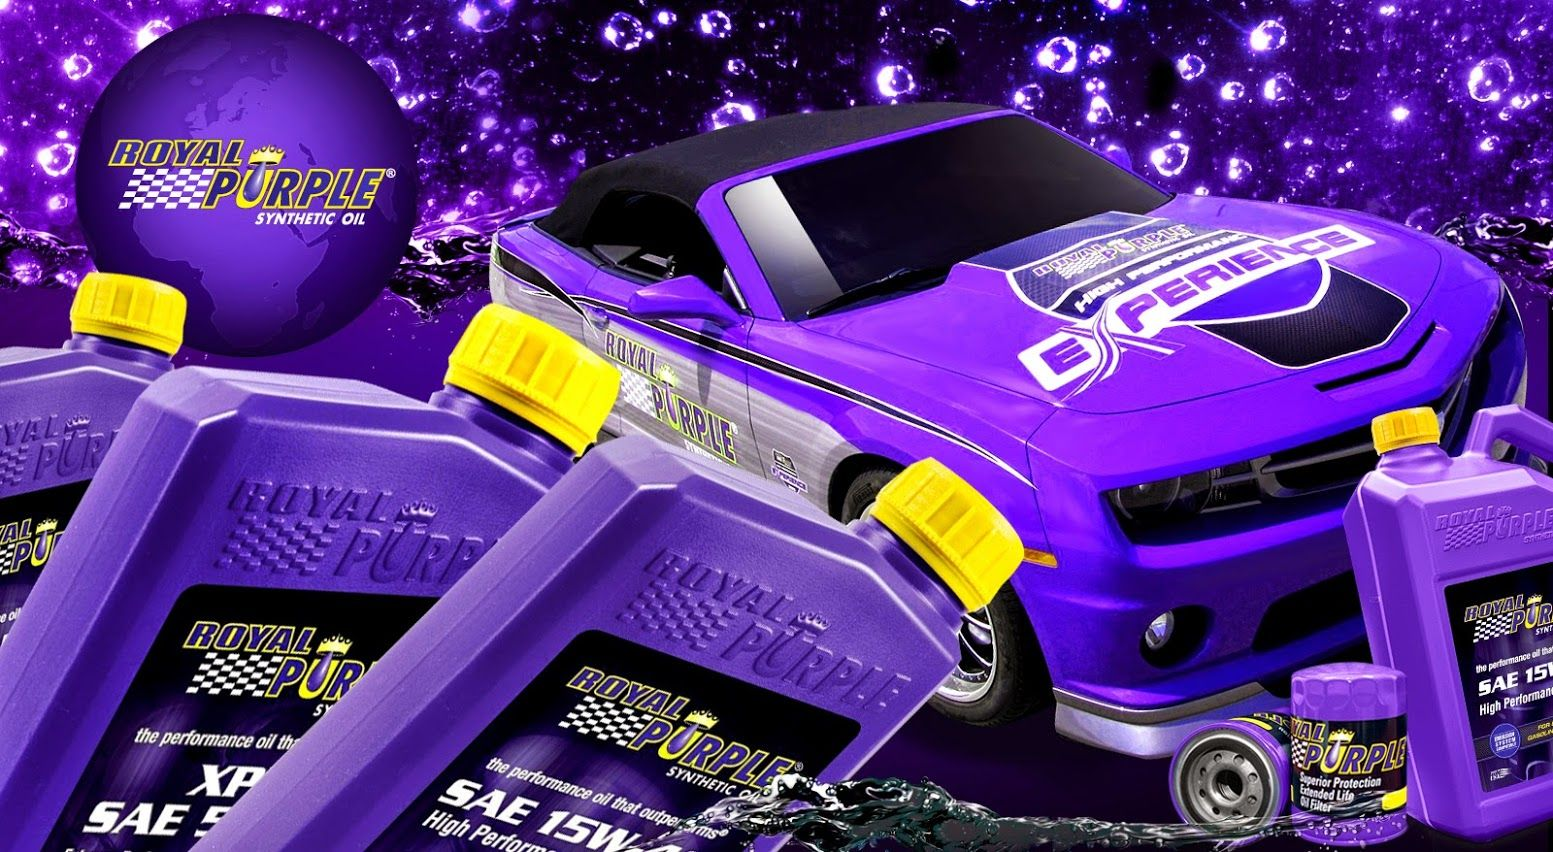 Royal Purple products are here to show the unlimited power!